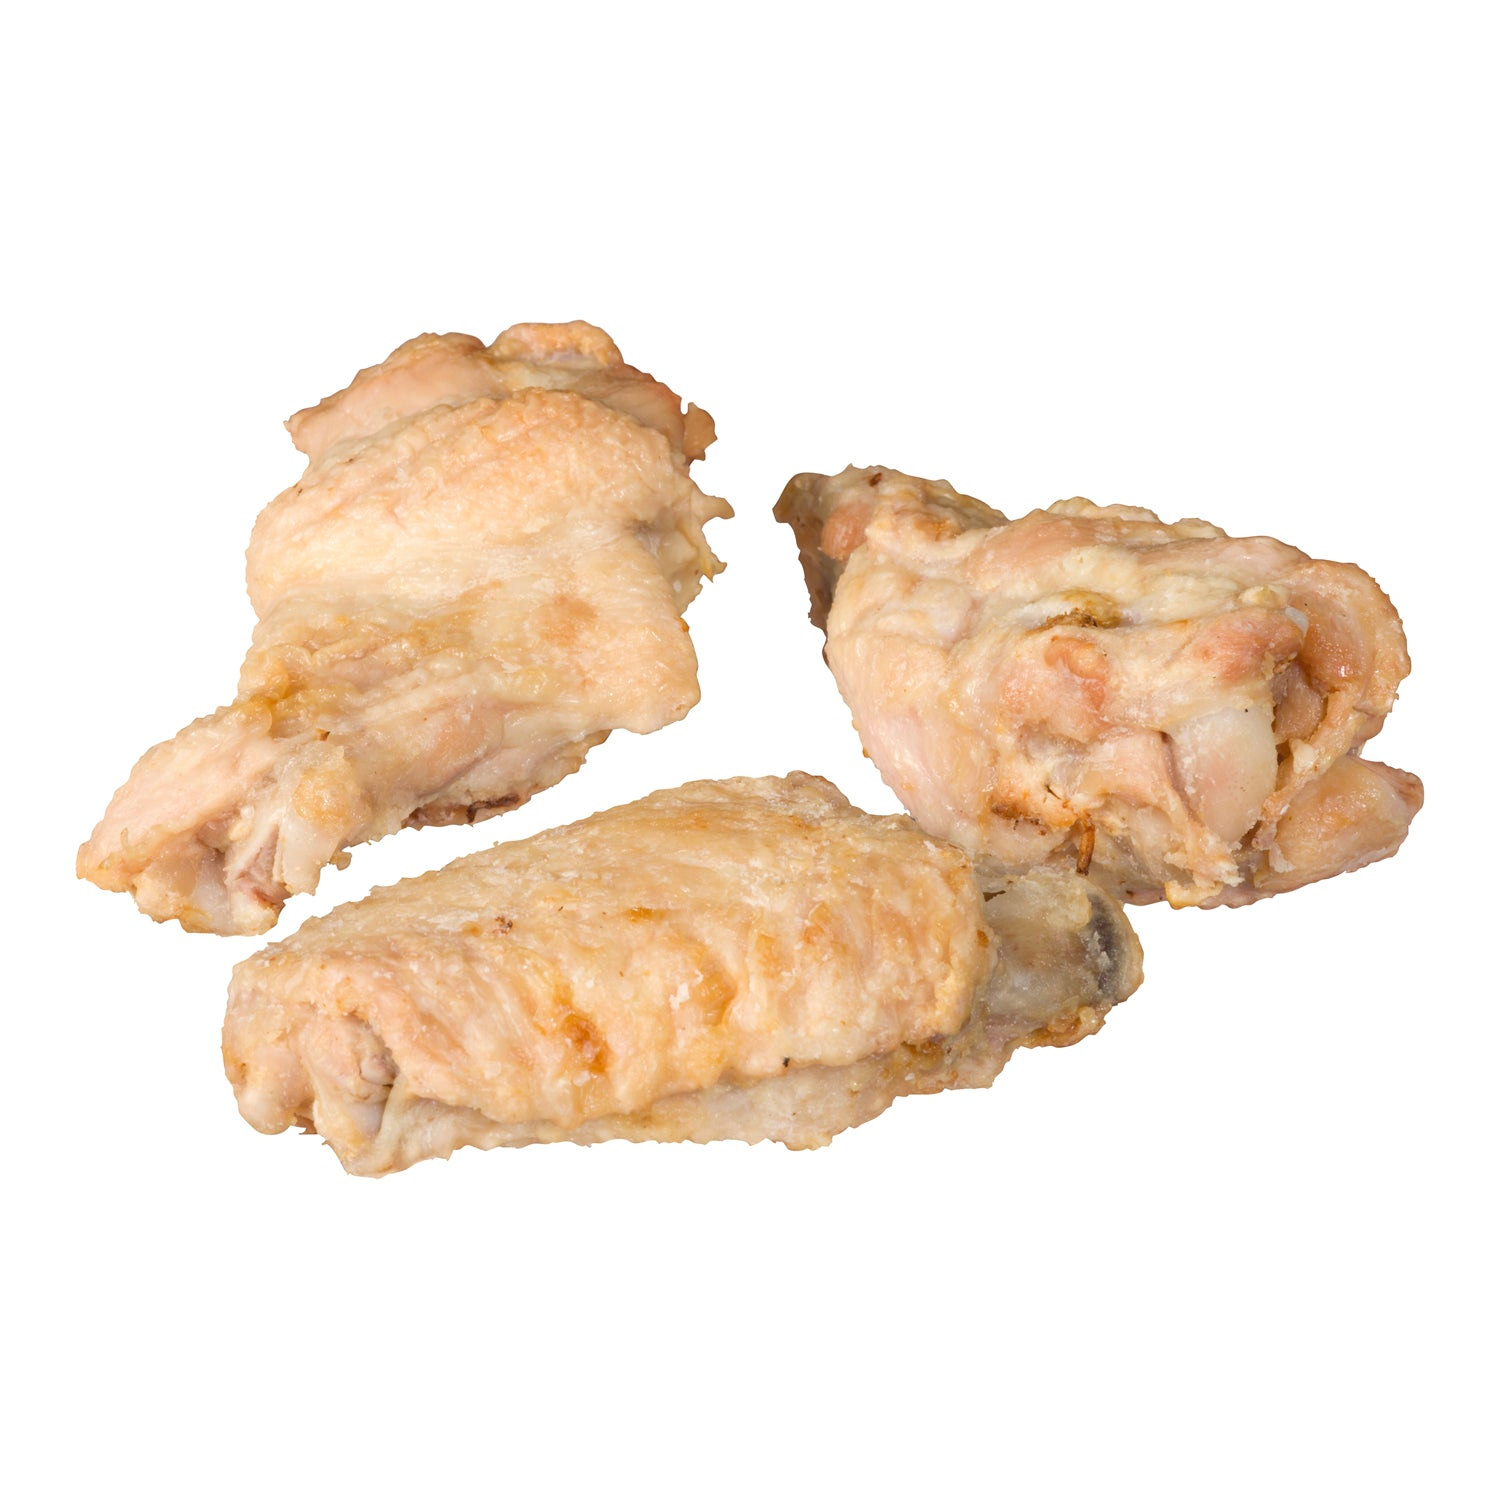 Sysco Classic Frozen Fully Cooked Chicken Wings 2 kg Fully Cooked - 2 Pack [$16.25/kg]